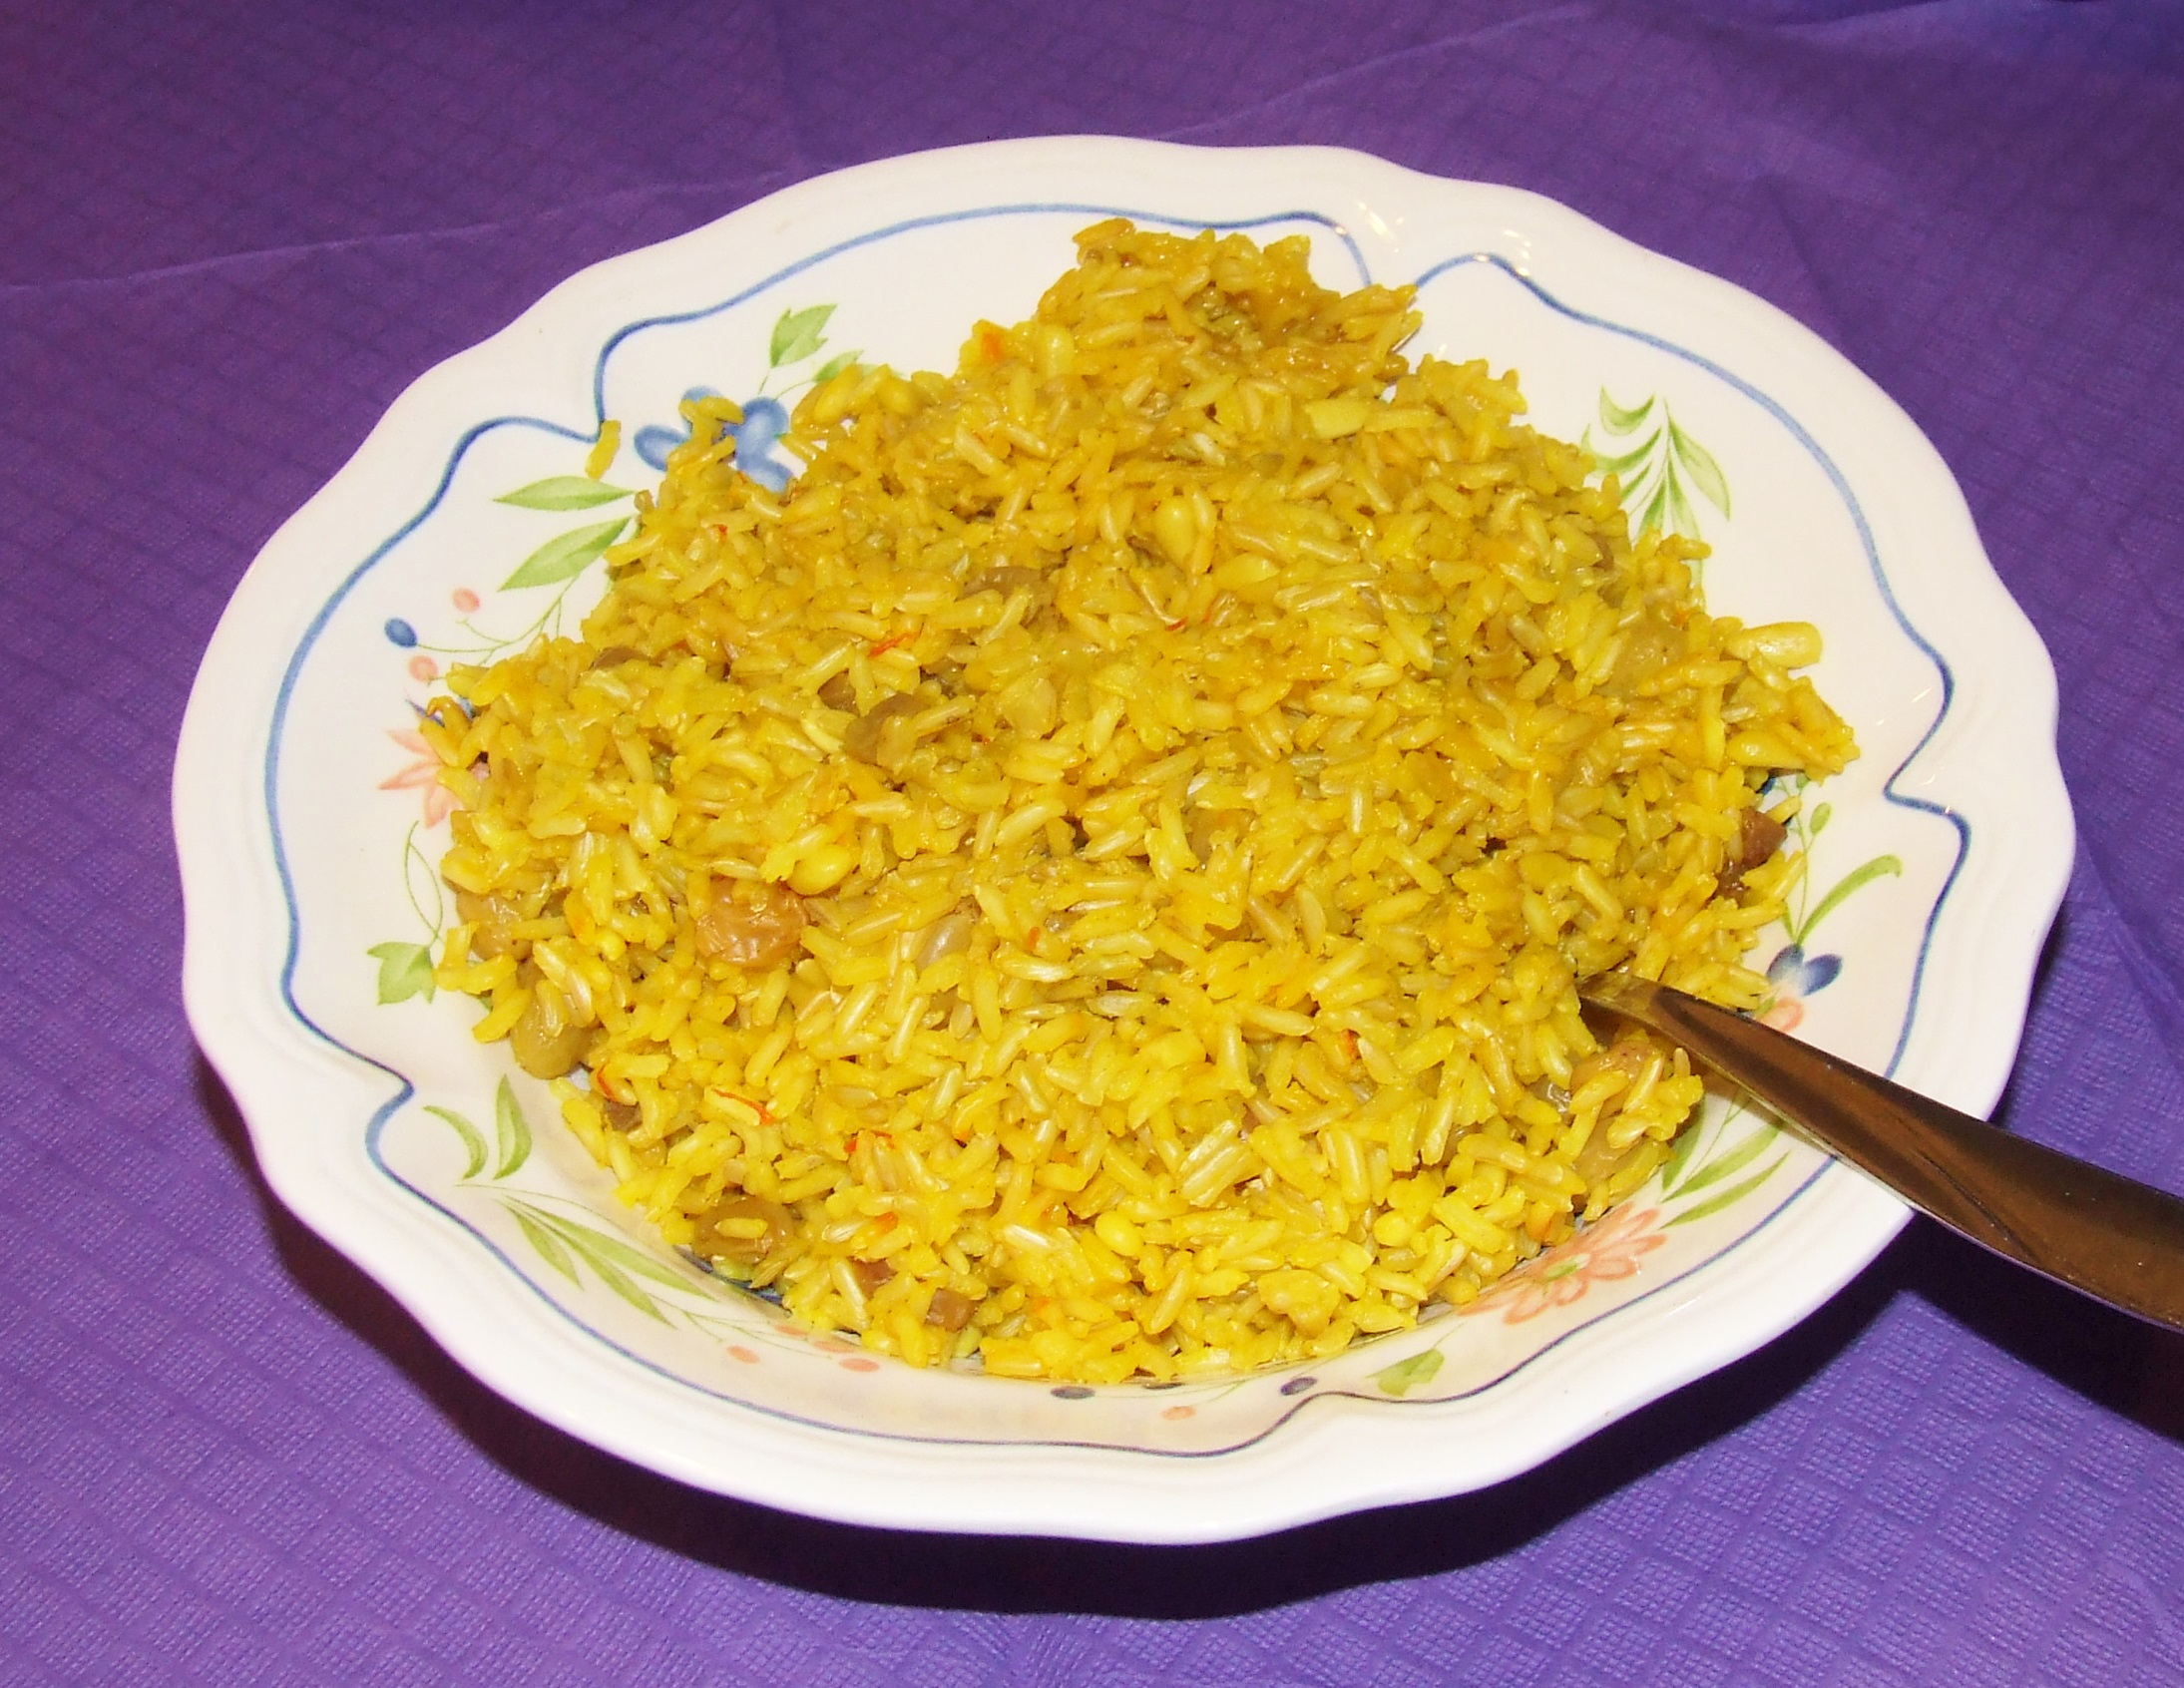 rice saffron rice spoon the rice into a serving with saffron rice ...